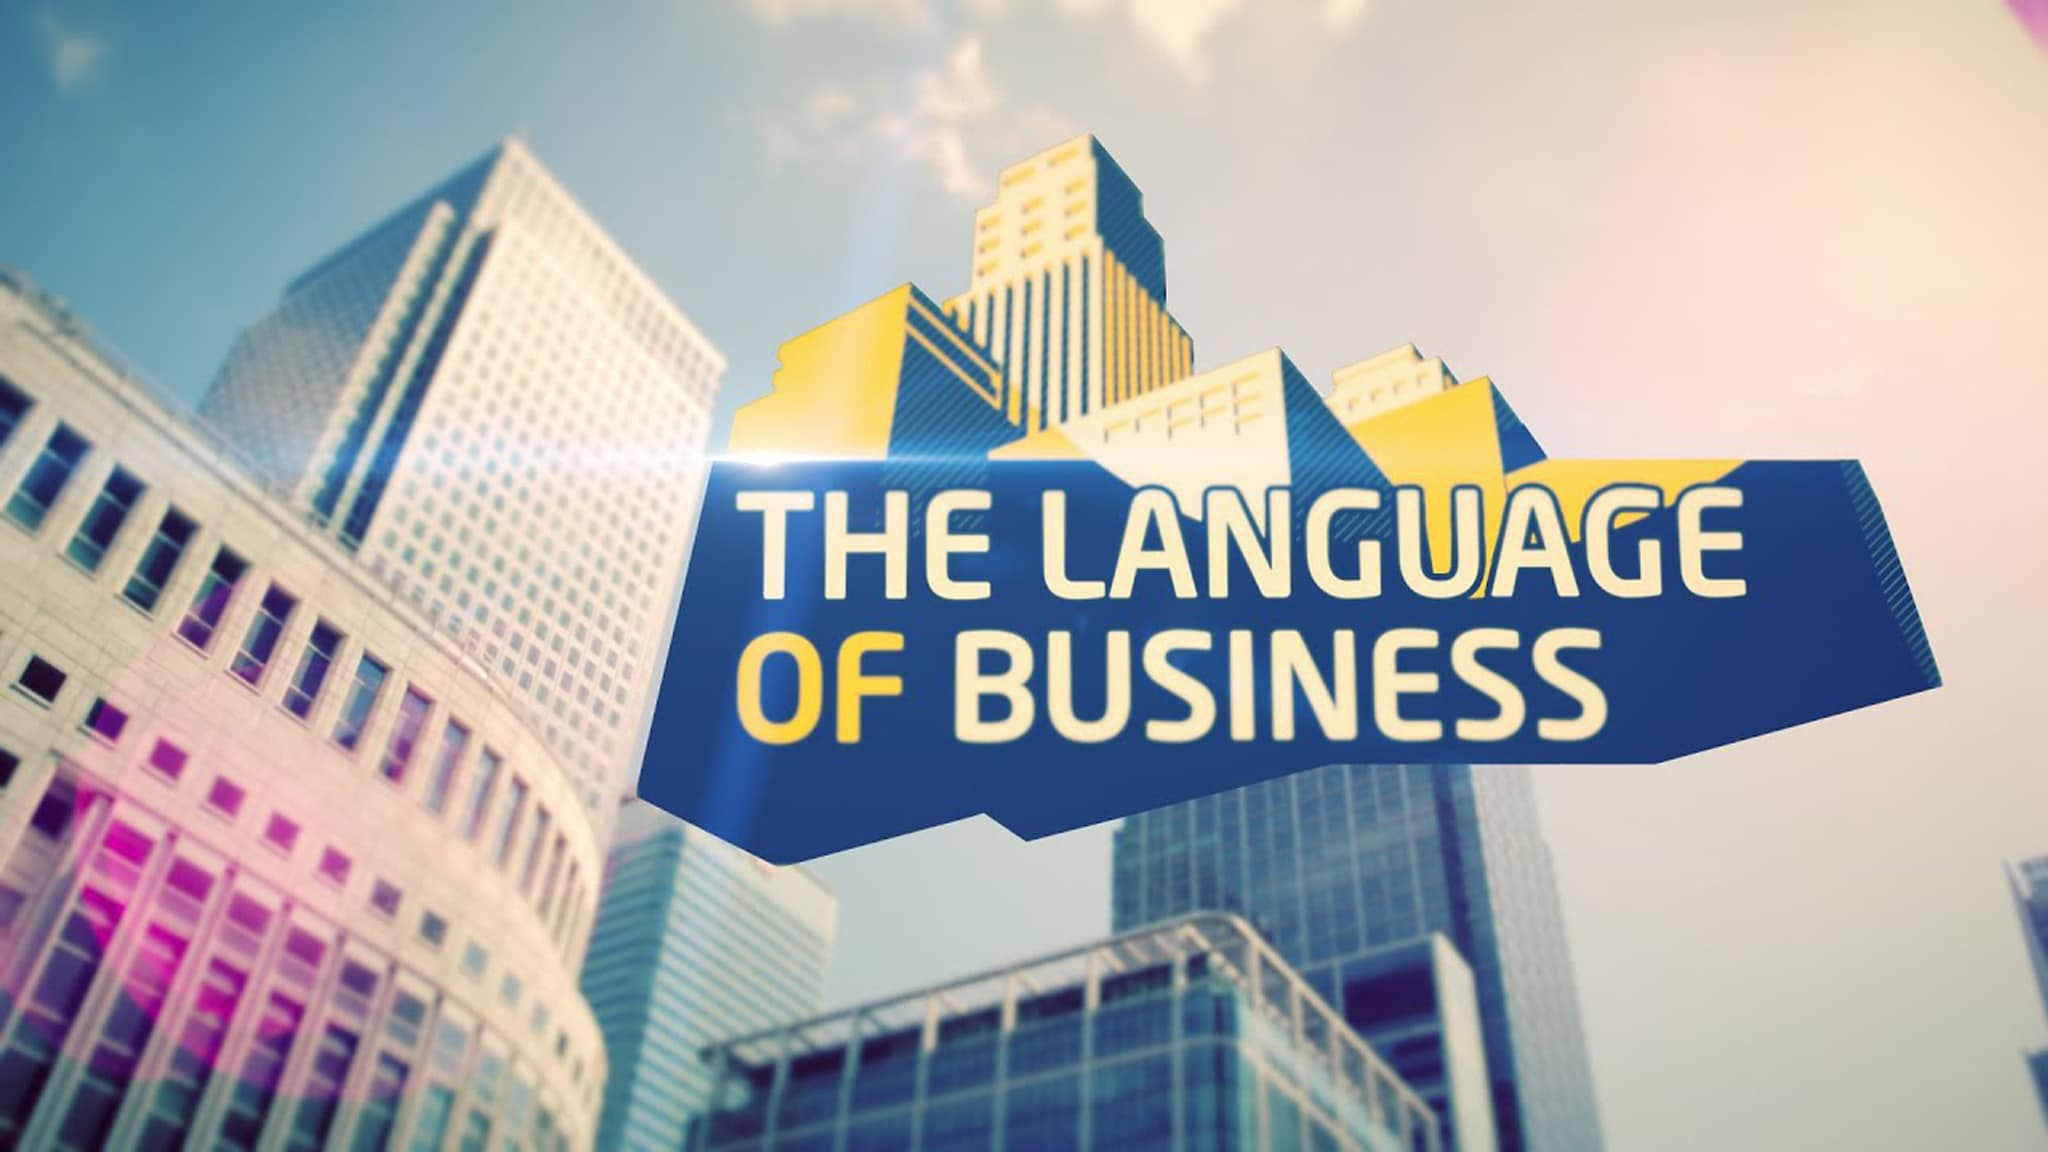 Rai Scuola The Language of Business Episodio 19